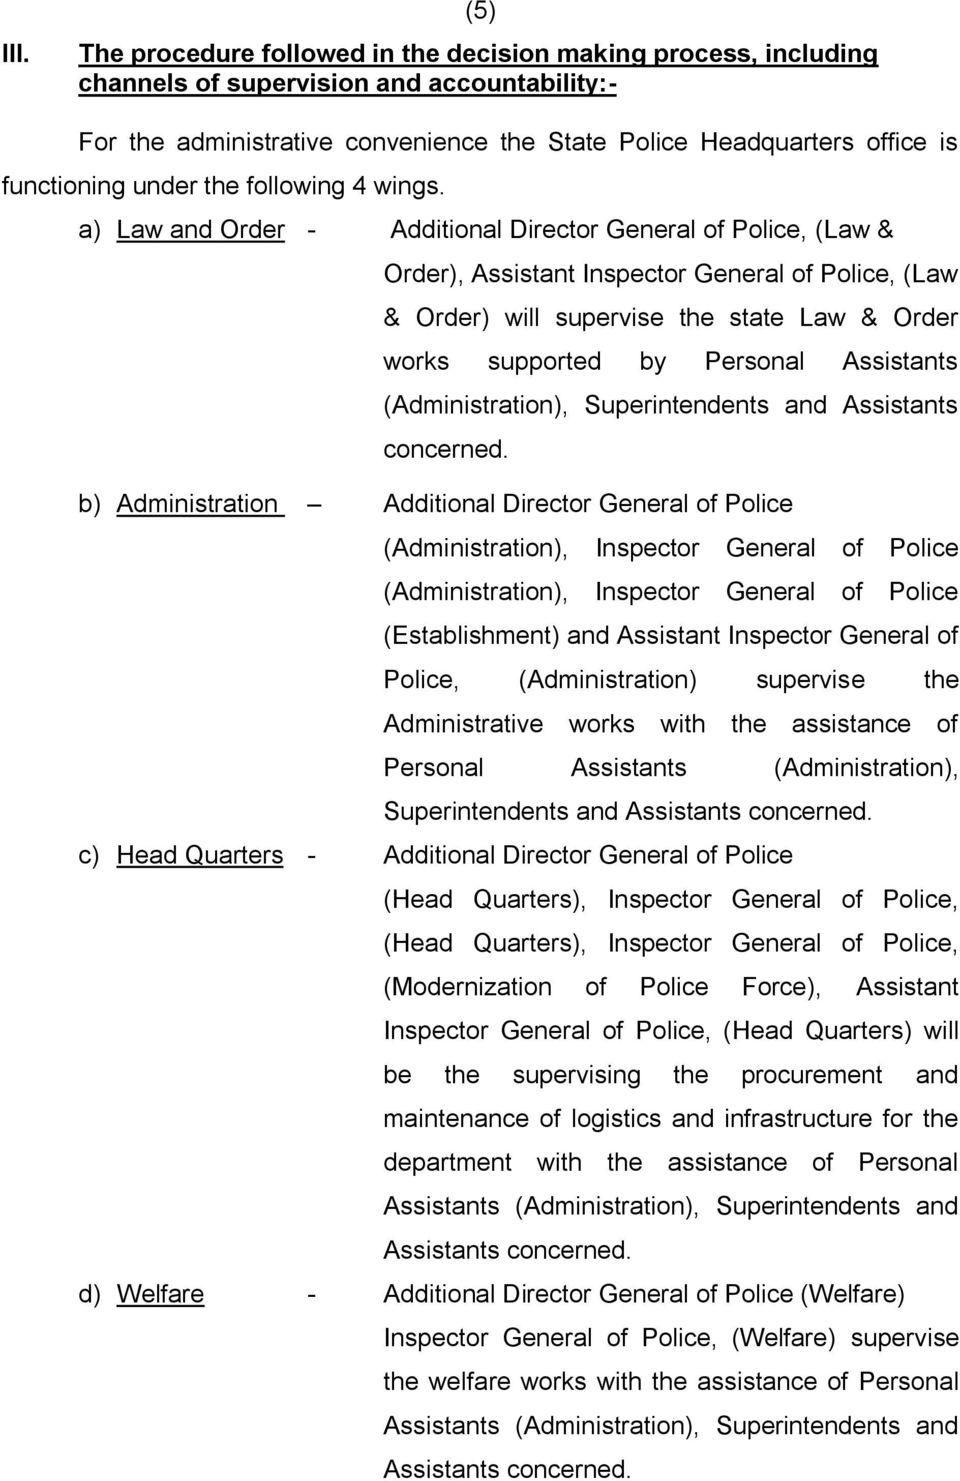 a) Law and Order - Additional Director General of Police, (Law & Order), Assistant Inspector General of Police, (Law & Order) will supervise the state Law & Order works supported by Personal